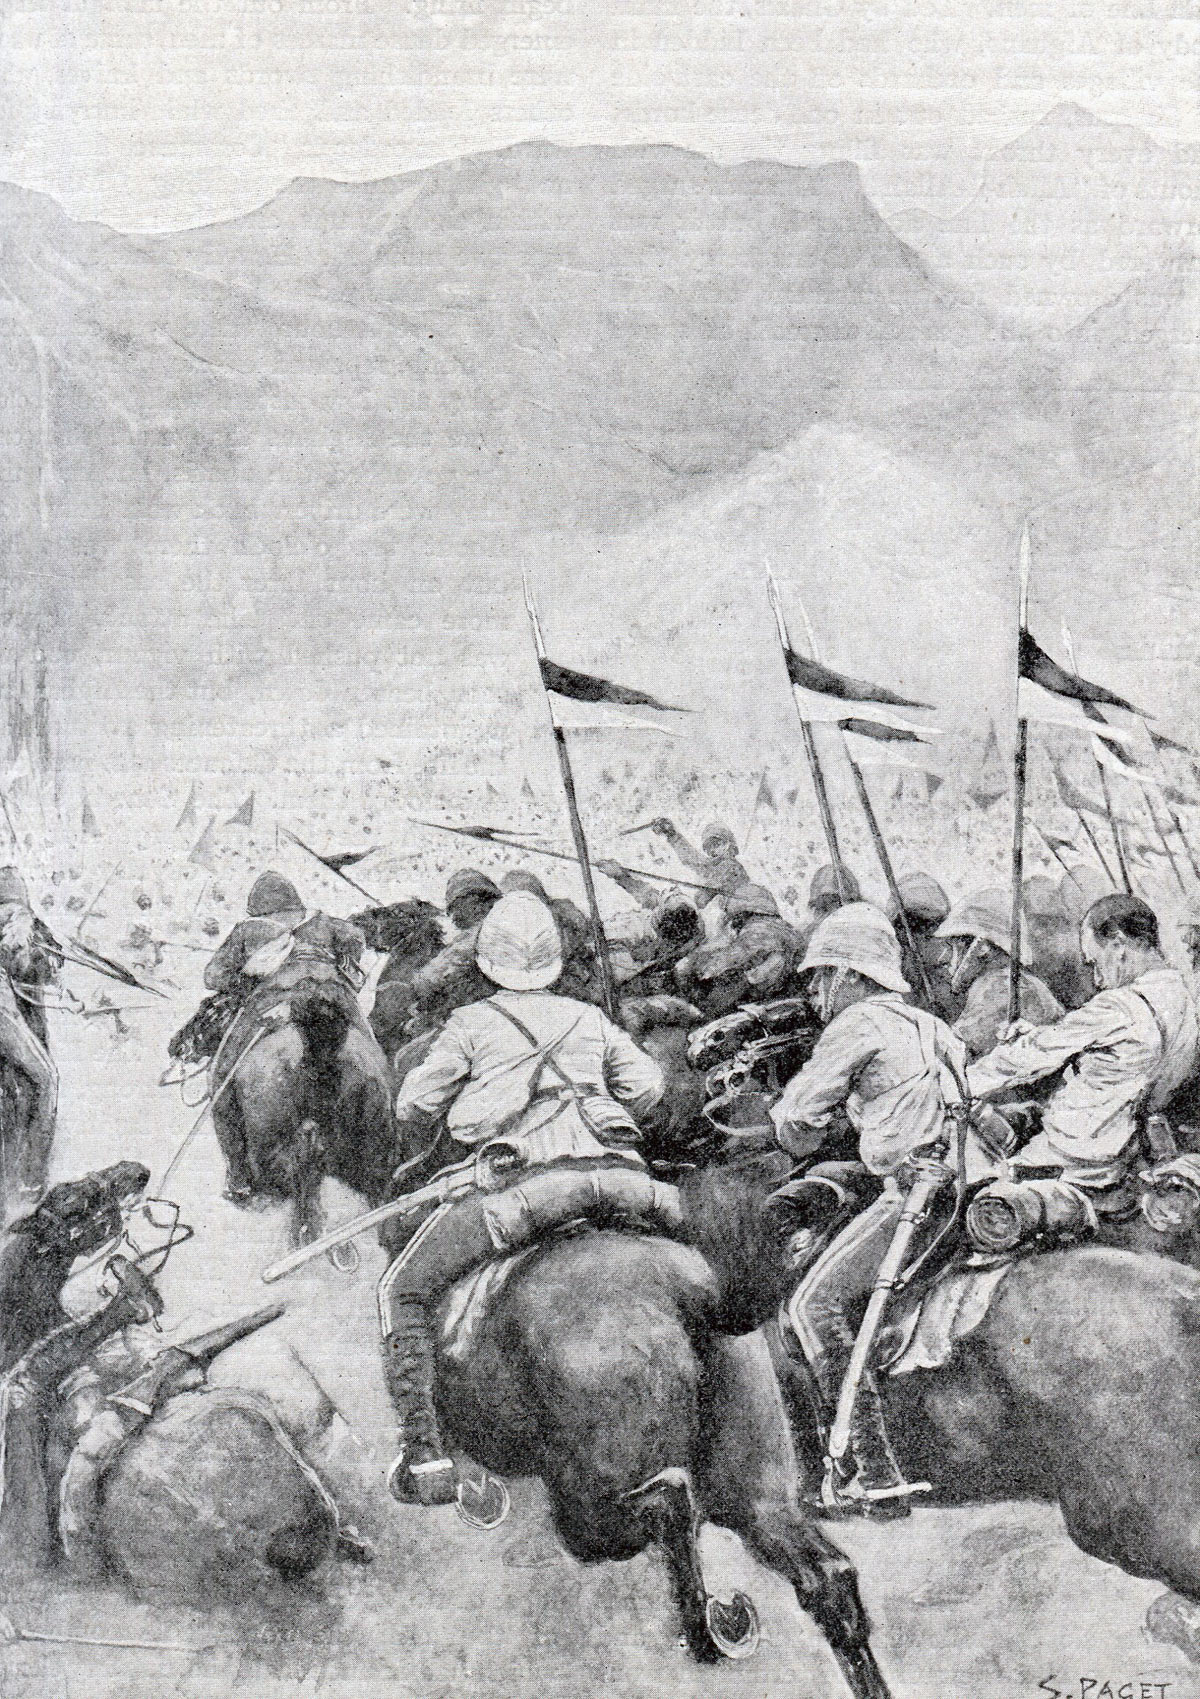 9th Lancers attacking at the Battle of Kabul December 1879 in the Second Afghan War: picture by S. Paget